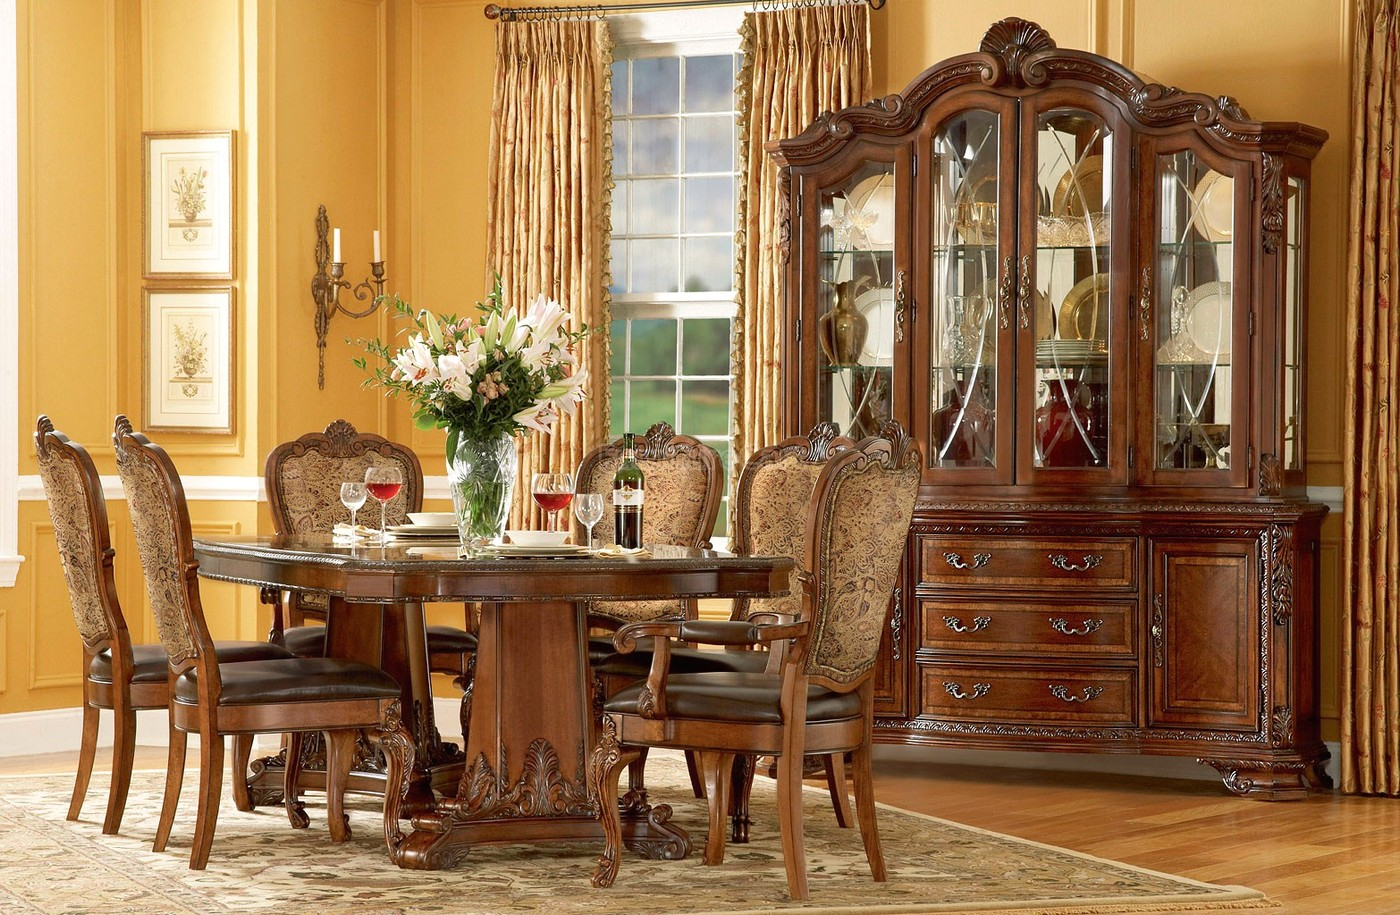 Old World Dining Table, Chairs, Furniture | Shop Factory ...